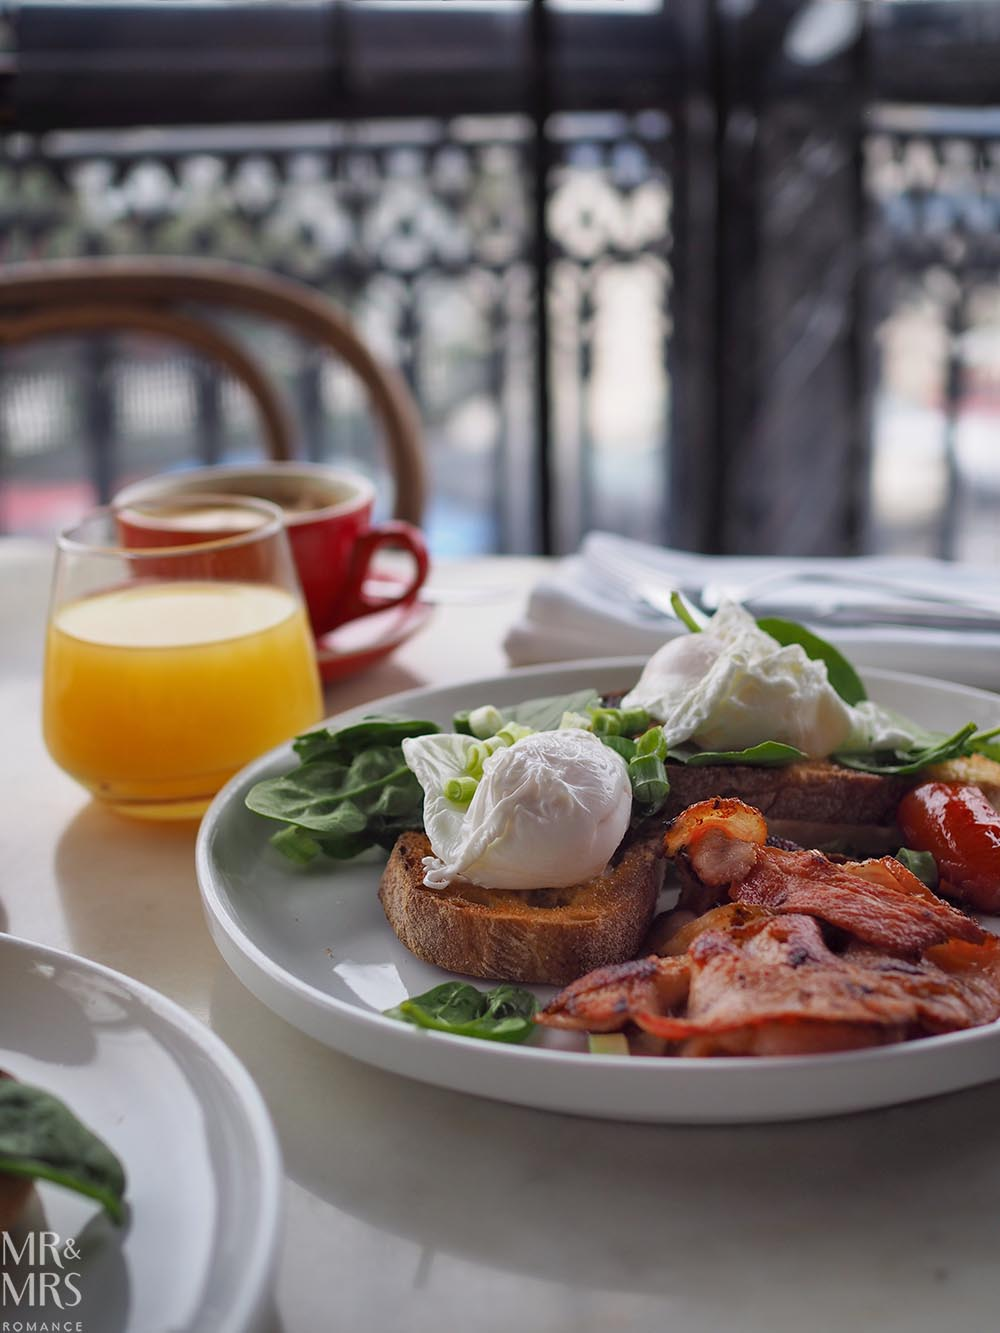 Where to stay in the Hunter Region, NSW - The Bronte Boutique Hotel, Morpeth - cooked breakfast